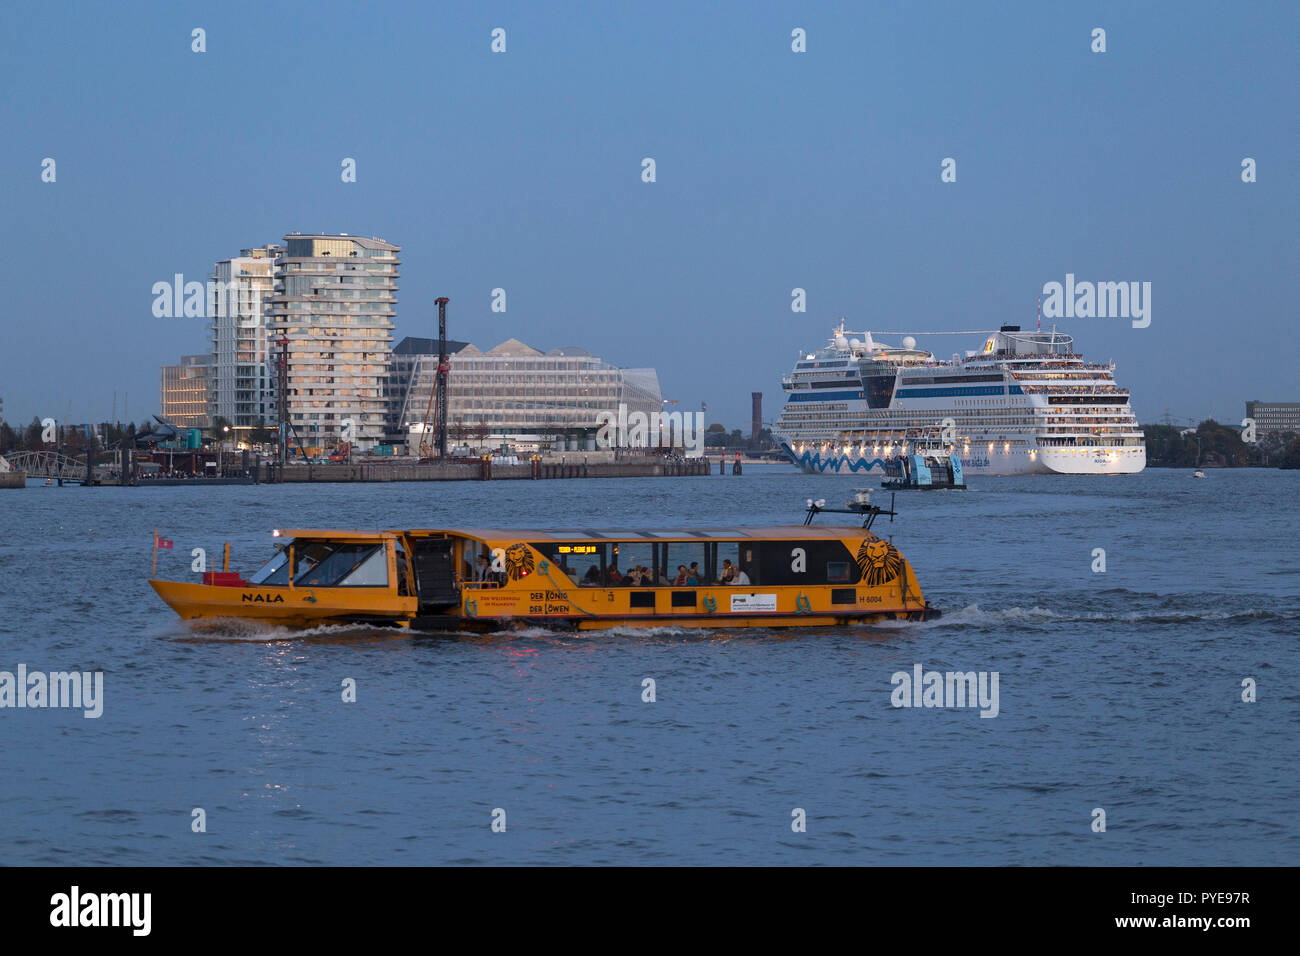 cruise ship AIDAsol, Marco Polo Tower and Unilver House, Harbour City, Hamburg, Germany Stock Photo